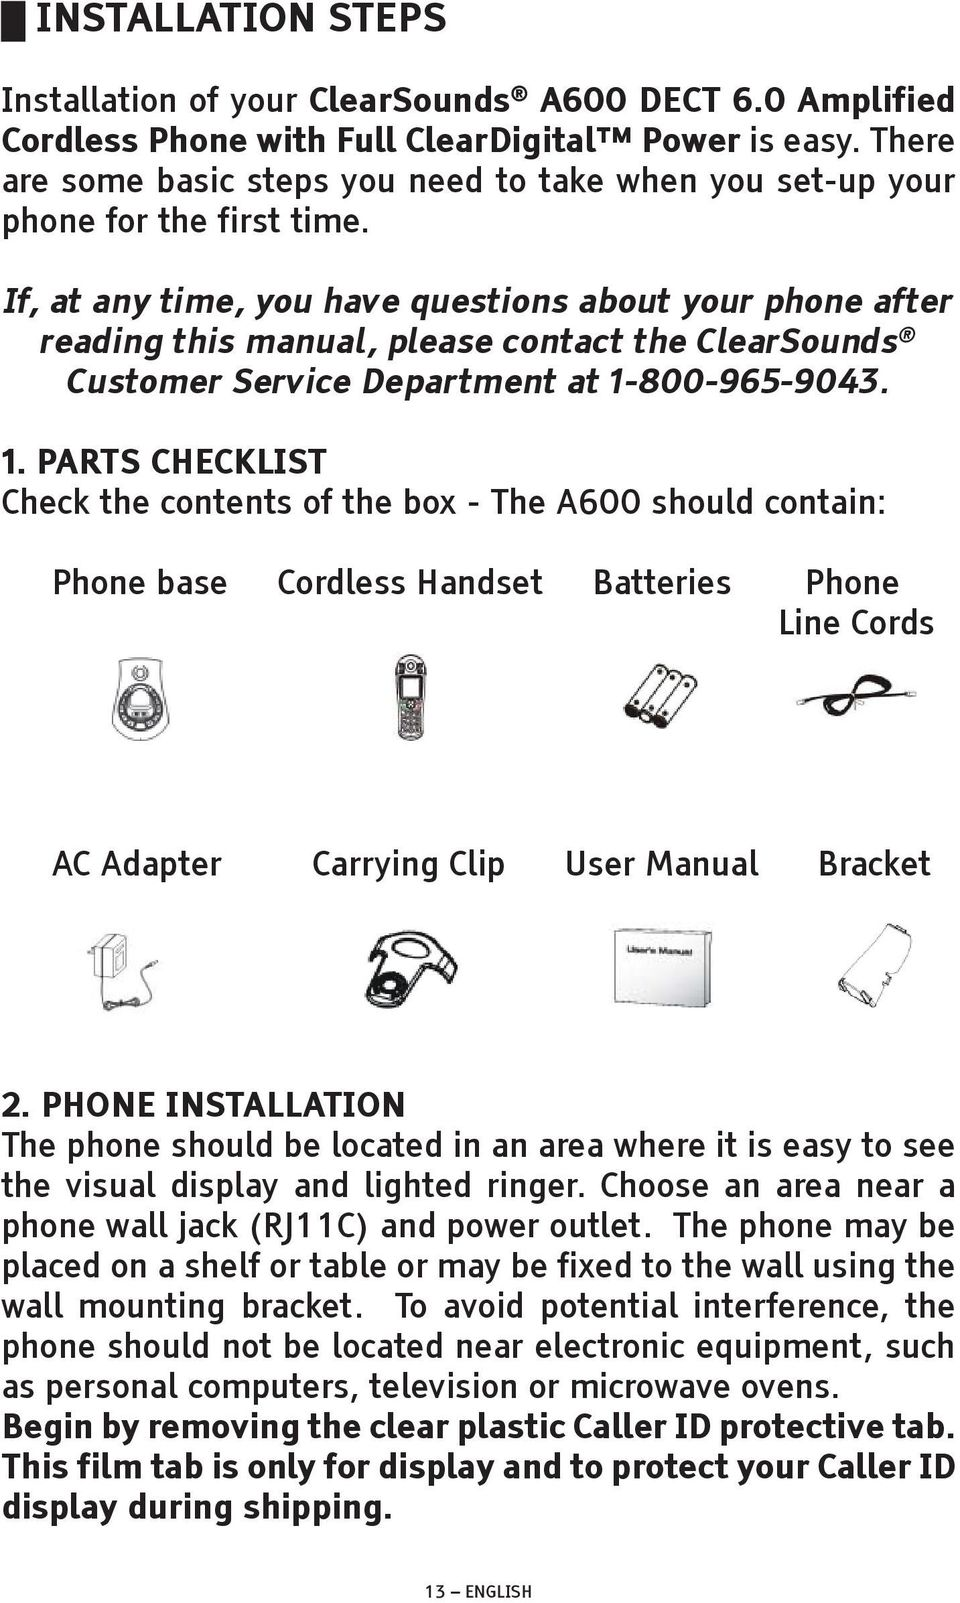 If, at any time, you have questions about your phone after reading this manual, please contact the ClearSounds Customer Service Department at 1-